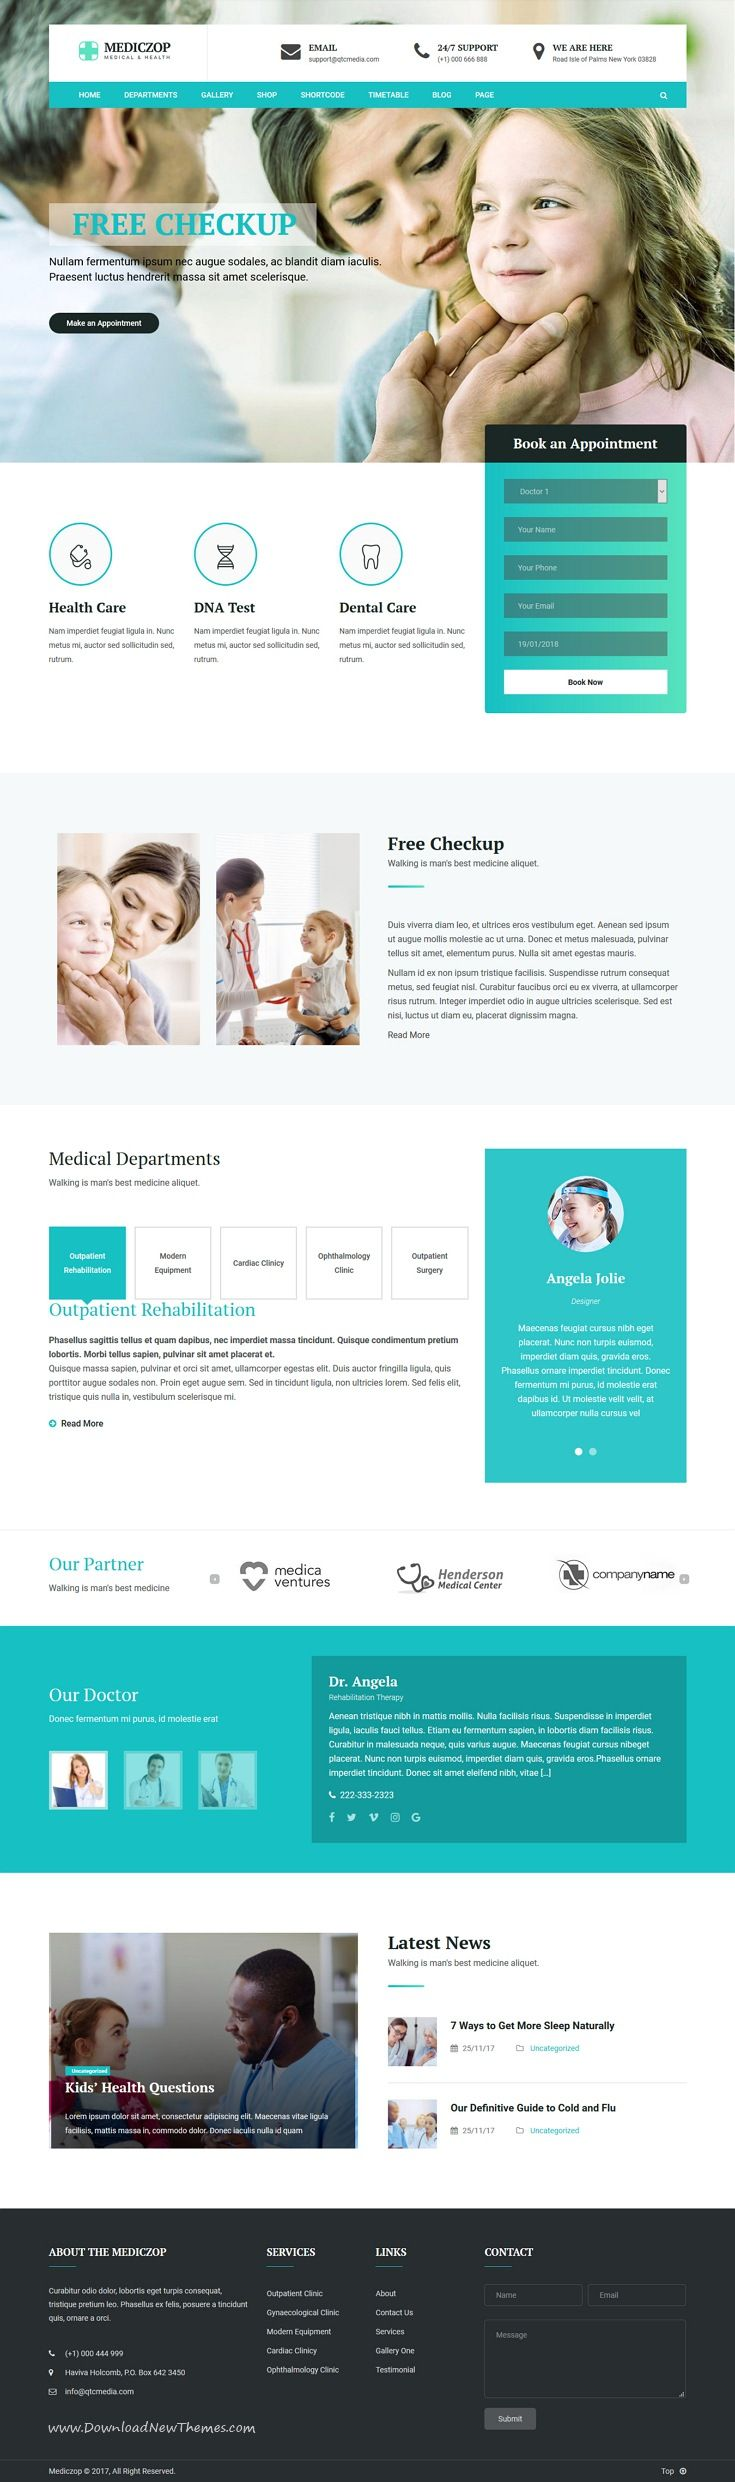 Mediczop is clean and modern deisgn 4in1 responsive WordPress theme for #medical, plastic #surgery or #dental clinics #website to live preview & download click on Visit